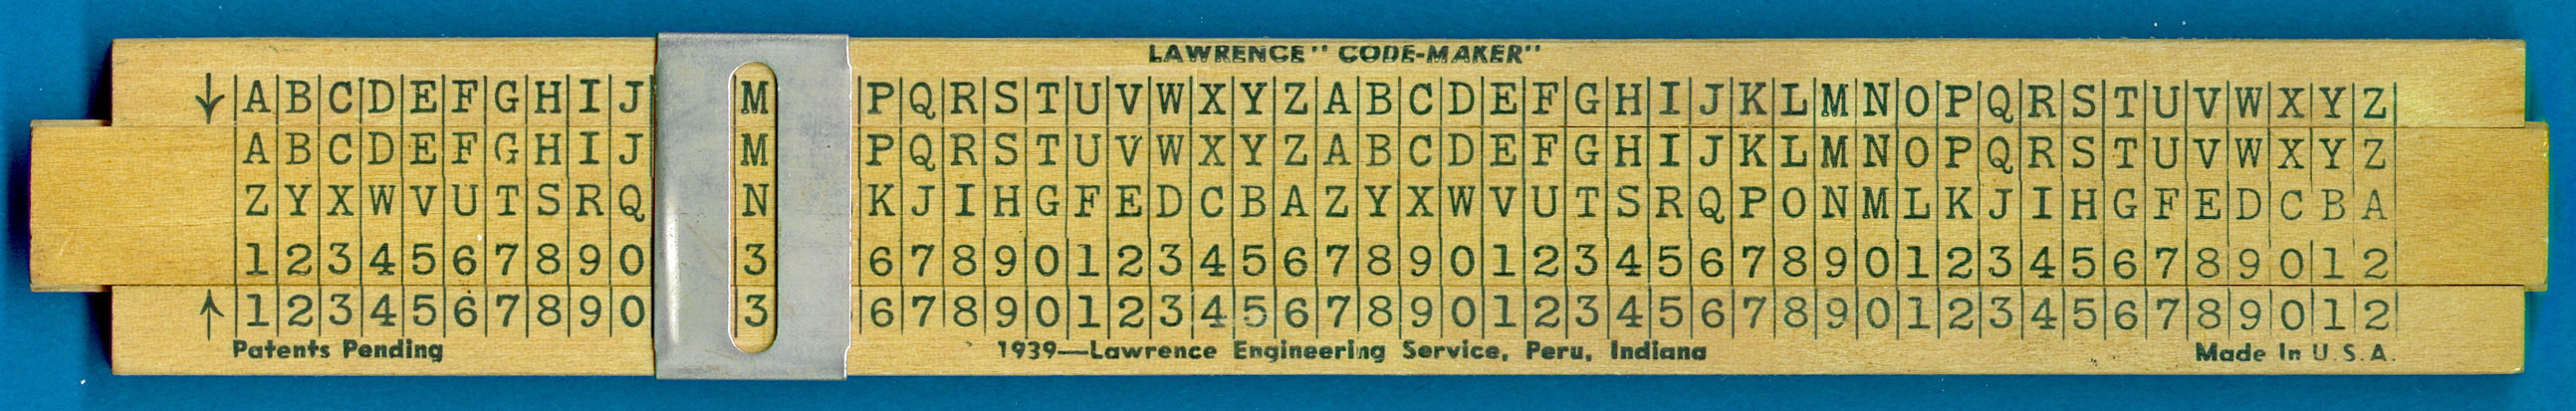 Lawrence Engineering Services Code-Maker Beich